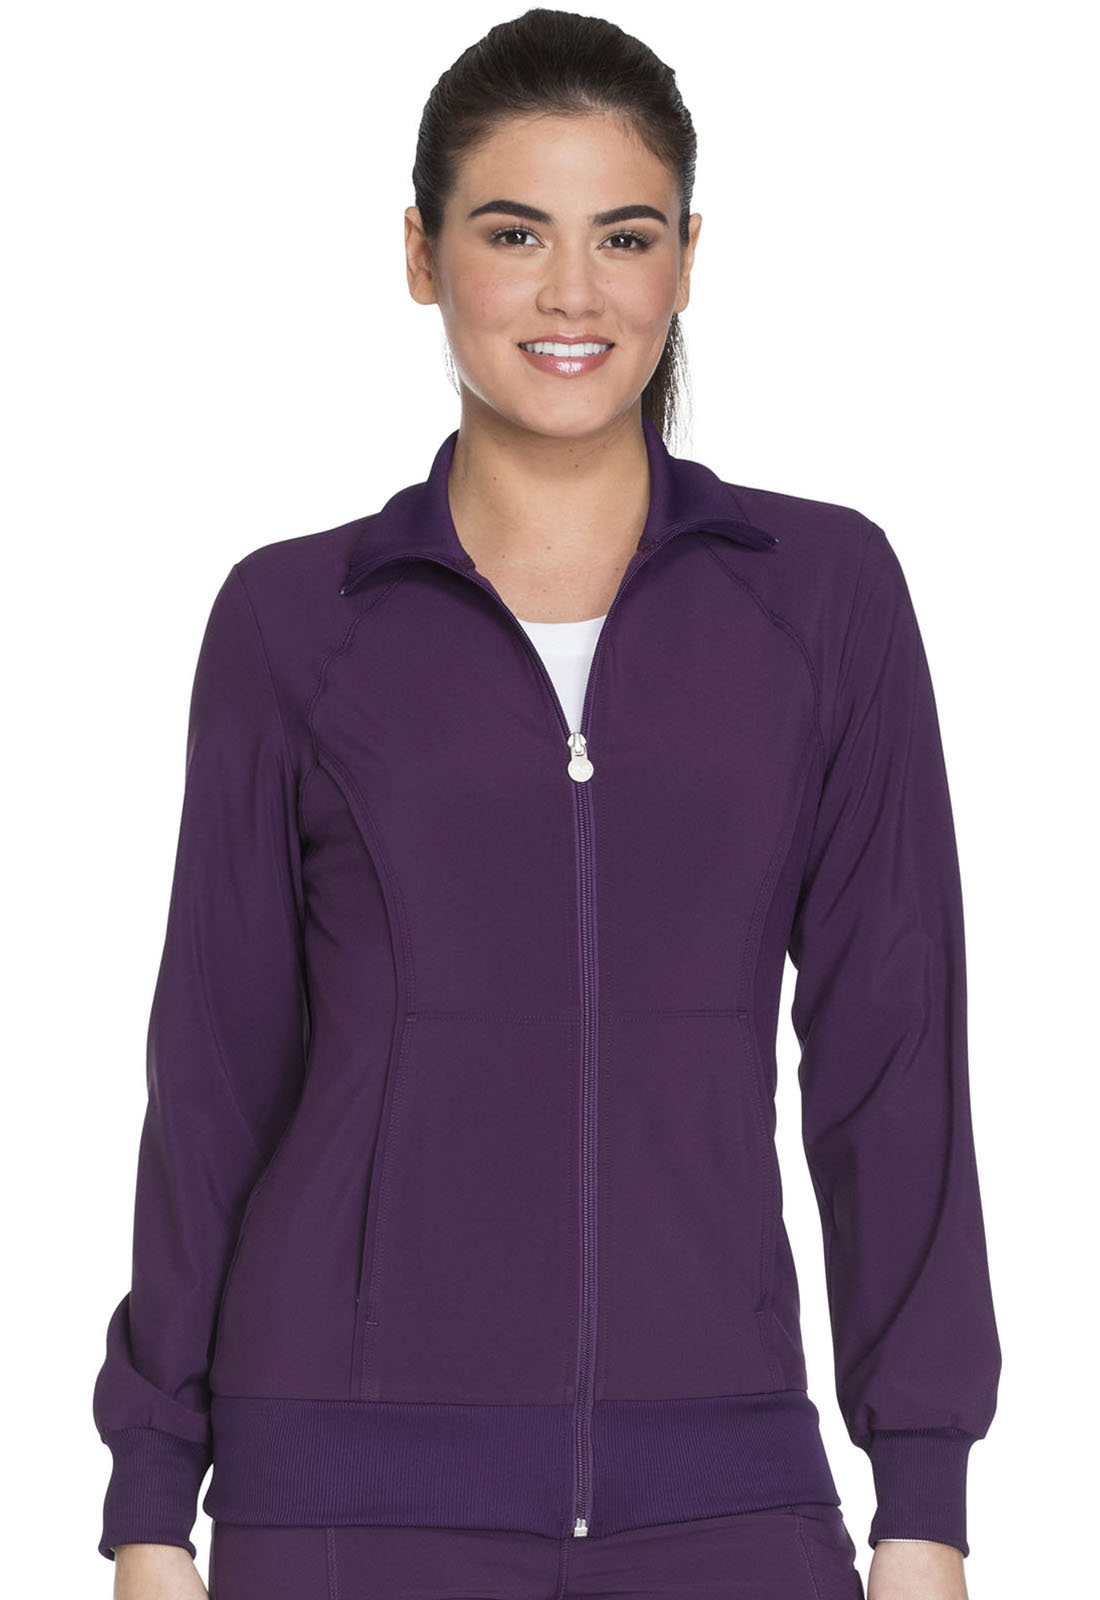 033b21201a3 Infinity Zip Front Warm-Up Jacket in Eggplant 2391A-EGG from ...